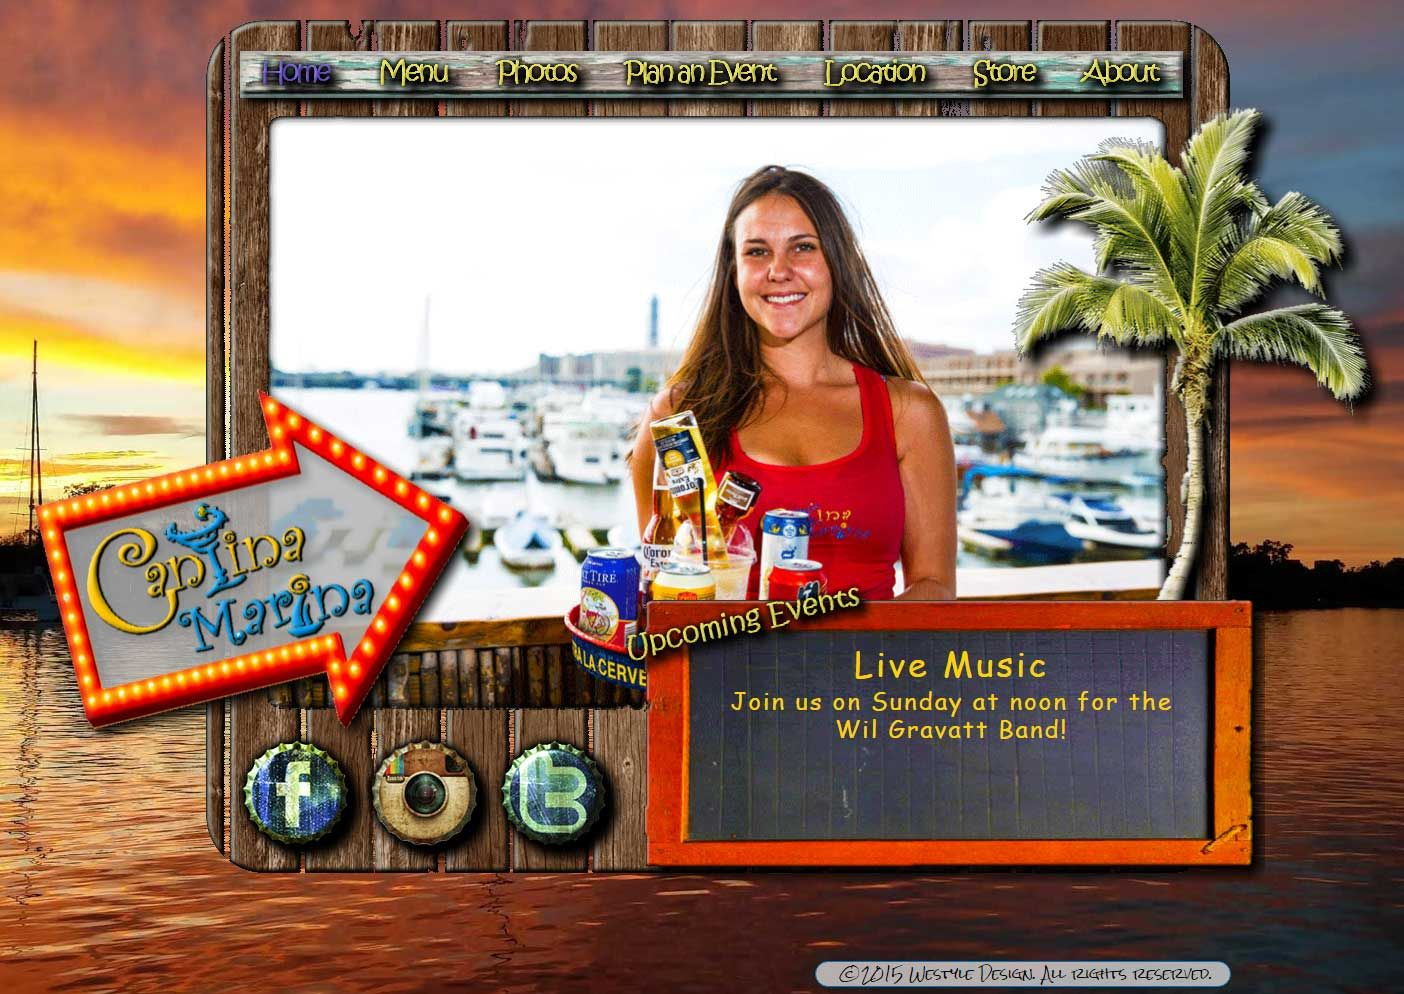 """Happy Hour at Cantina Marina http://www.sandandsteelfitness.com/happy-hour-cantina-marina/ #Events, #HappyHour #Events [vc_row type=""""in_container"""" scene_position=""""center"""" text_color=""""dark"""" text_align=""""left"""" overlay_strength=""""0.3""""][vc_column column_padding=""""no-extra-padding"""" column_padding_position=""""all"""" background_color_opacity=""""1"""" background_hover_color_opacity=""""1"""" width=""""1/1""""][vc_column_text] Happy Hour from http://www.sandandsteelfitness.com/happy-hour-cantina-marina"""